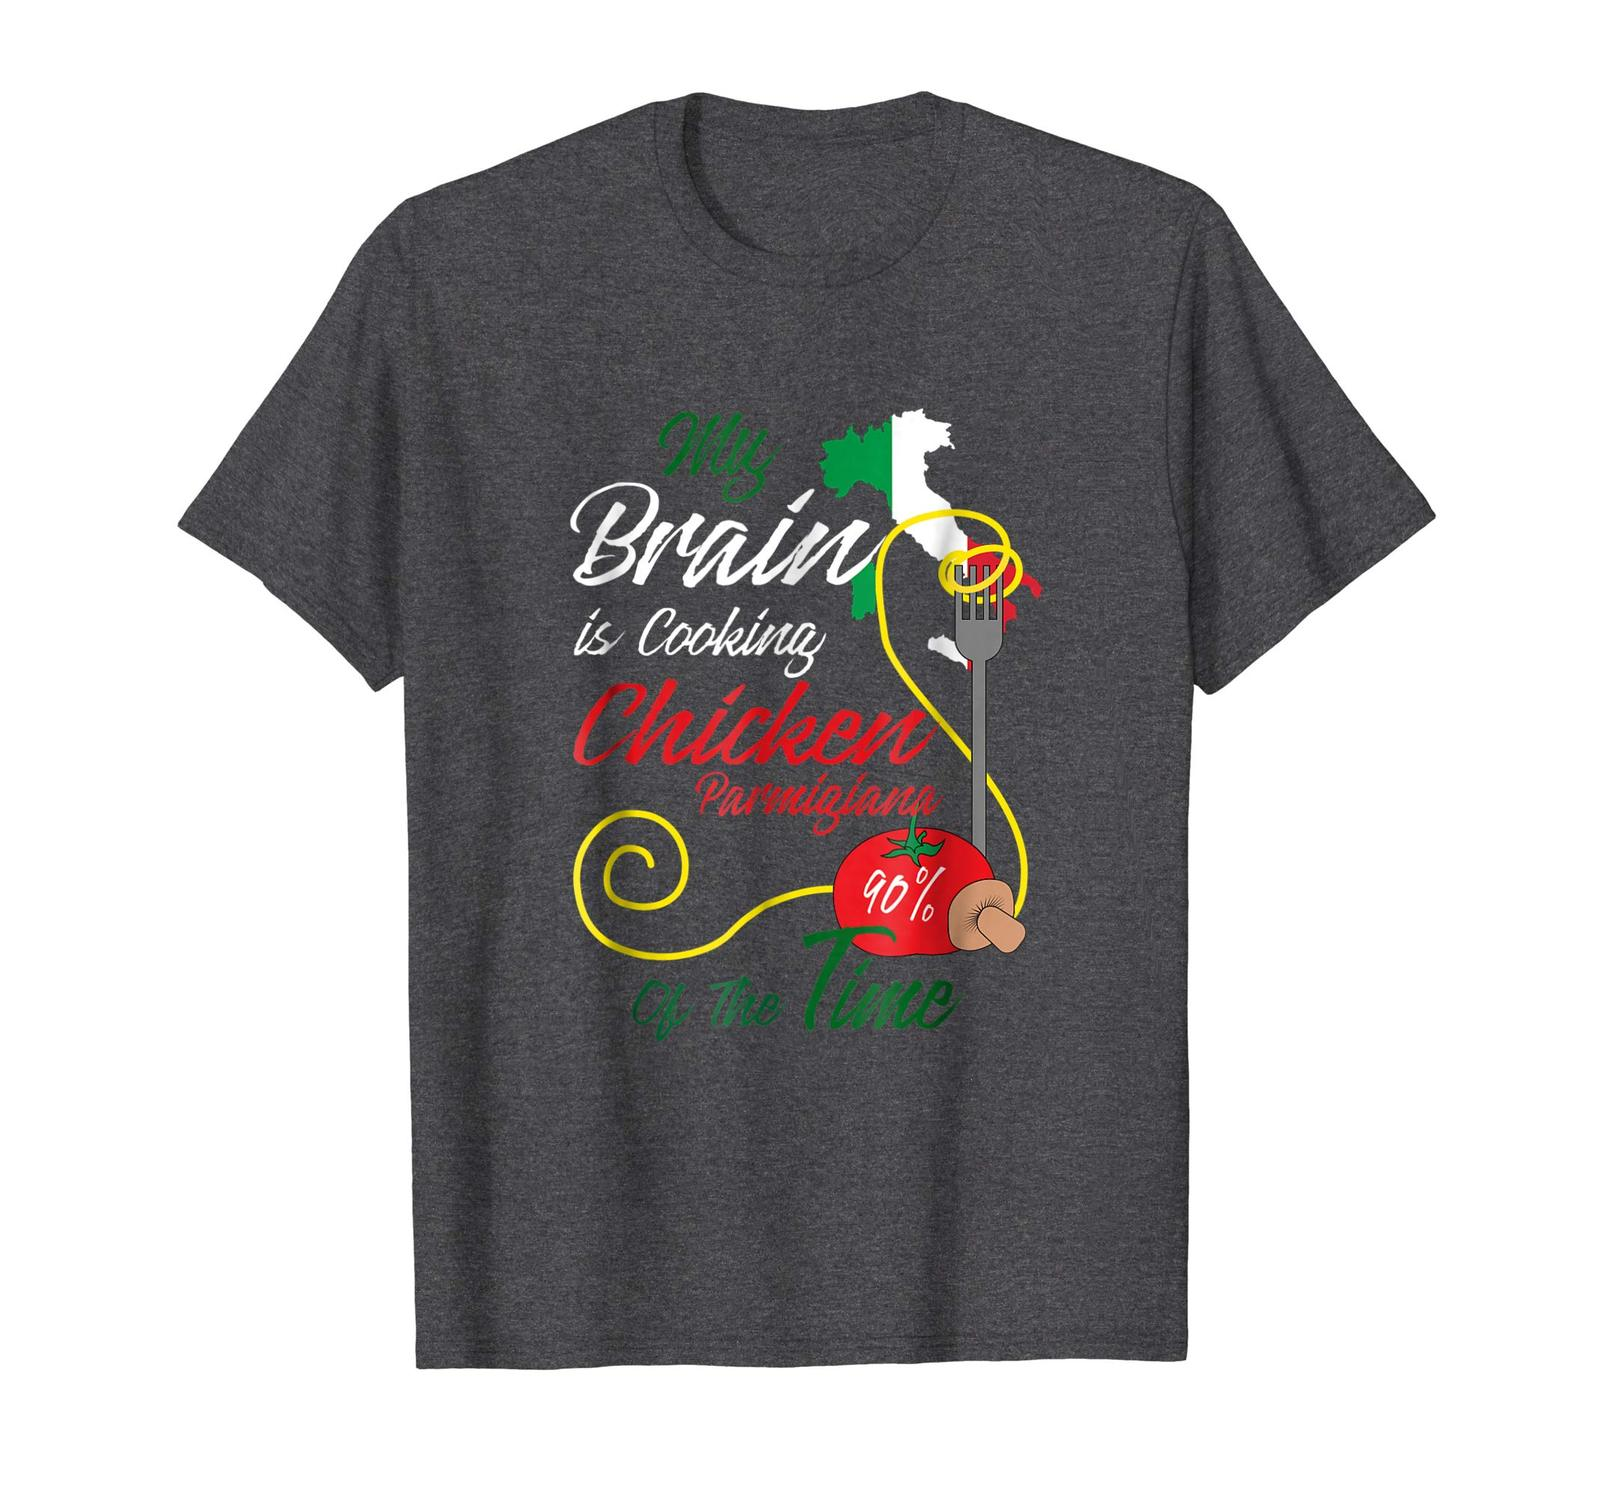 Brother Shirts - My Brain is Cooking Chicken Parmigiana 90% of The Time Men